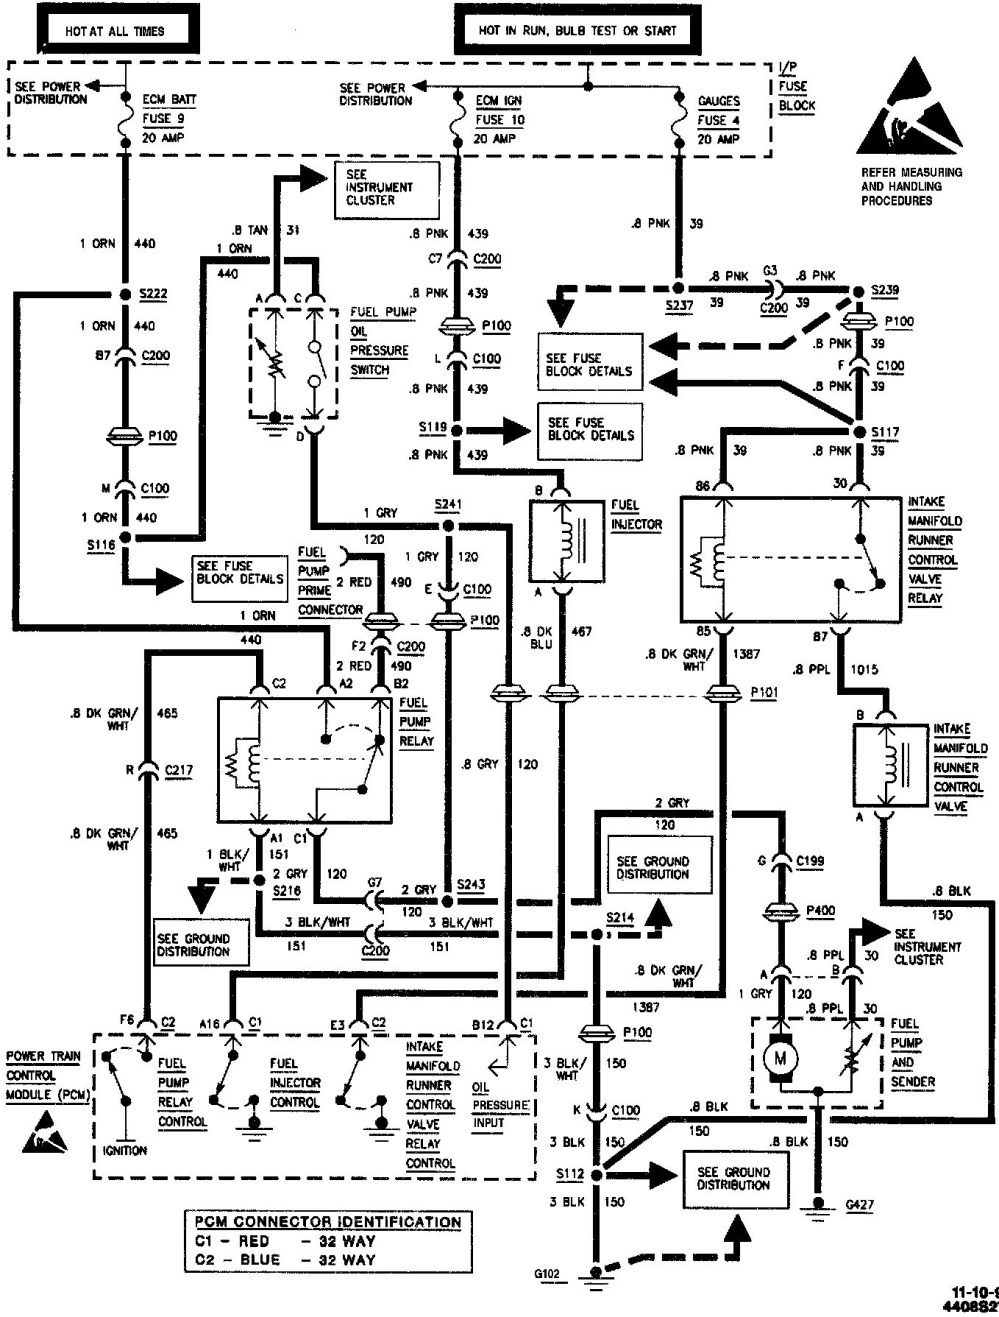 medium resolution of 1988 chevy s10 wiring diagram wiring diagram blogs 95 chevy s10 vacuum diagram 95 chevy s10 wiring diagram